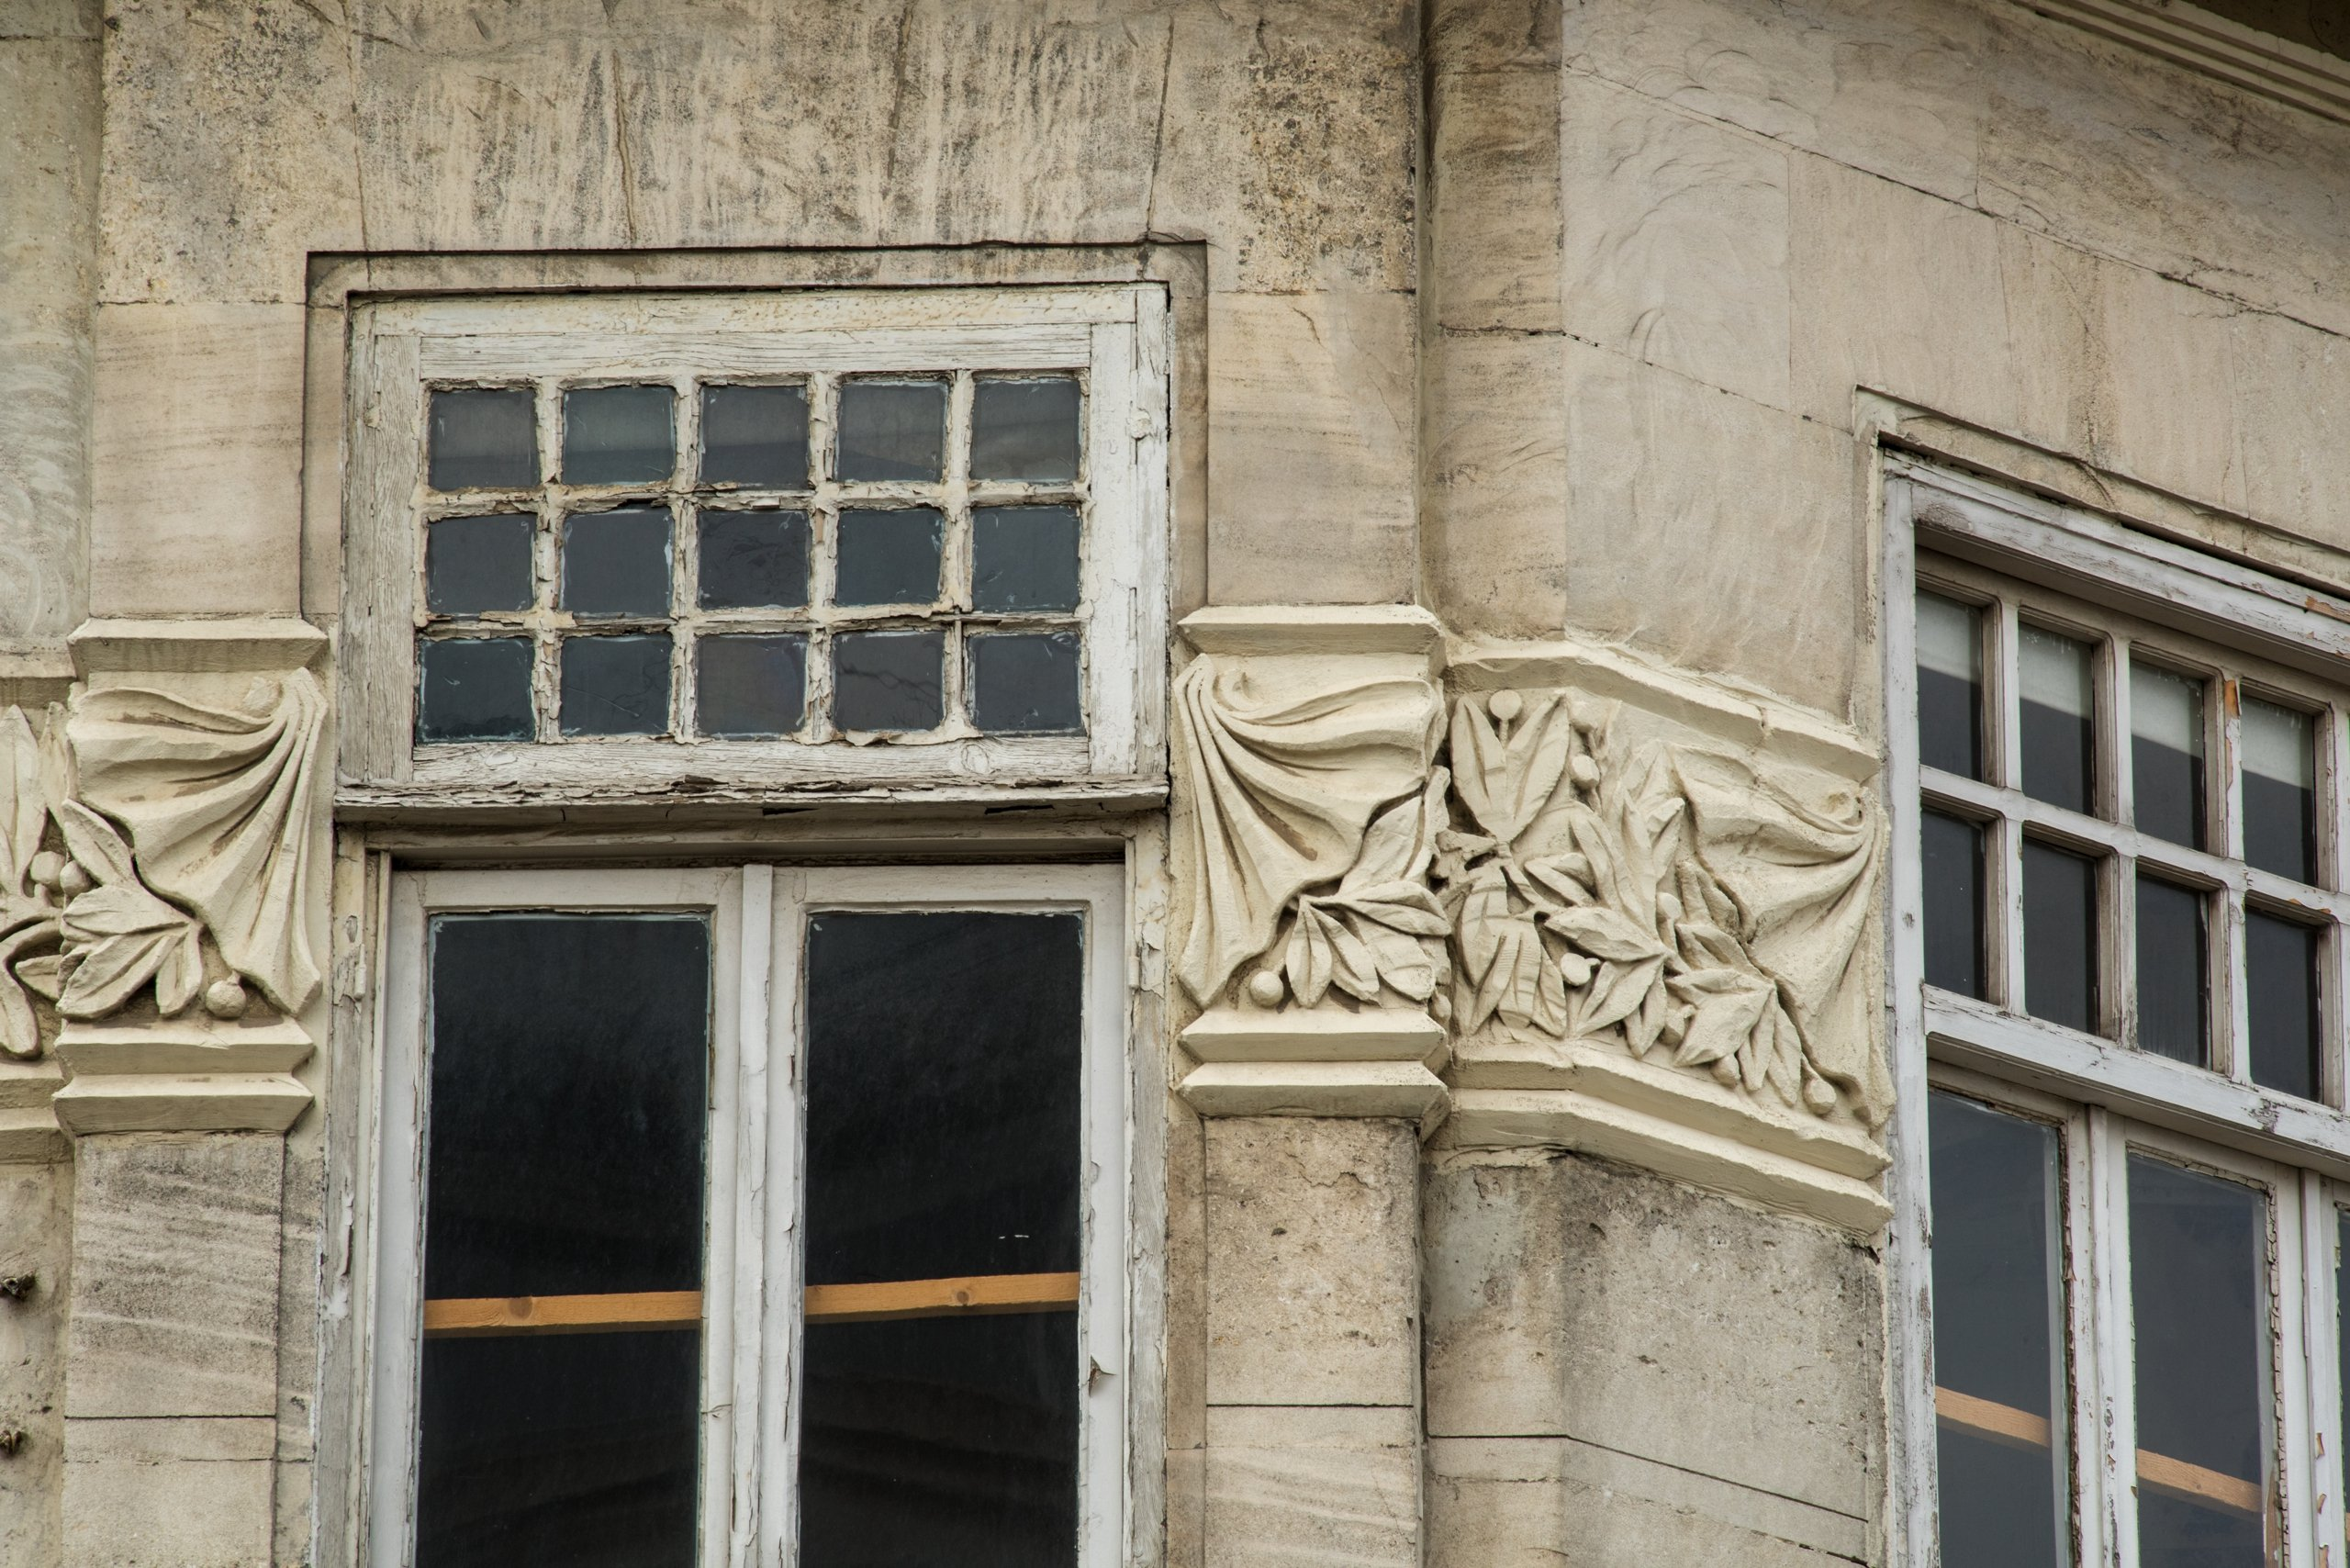 Details from the building.